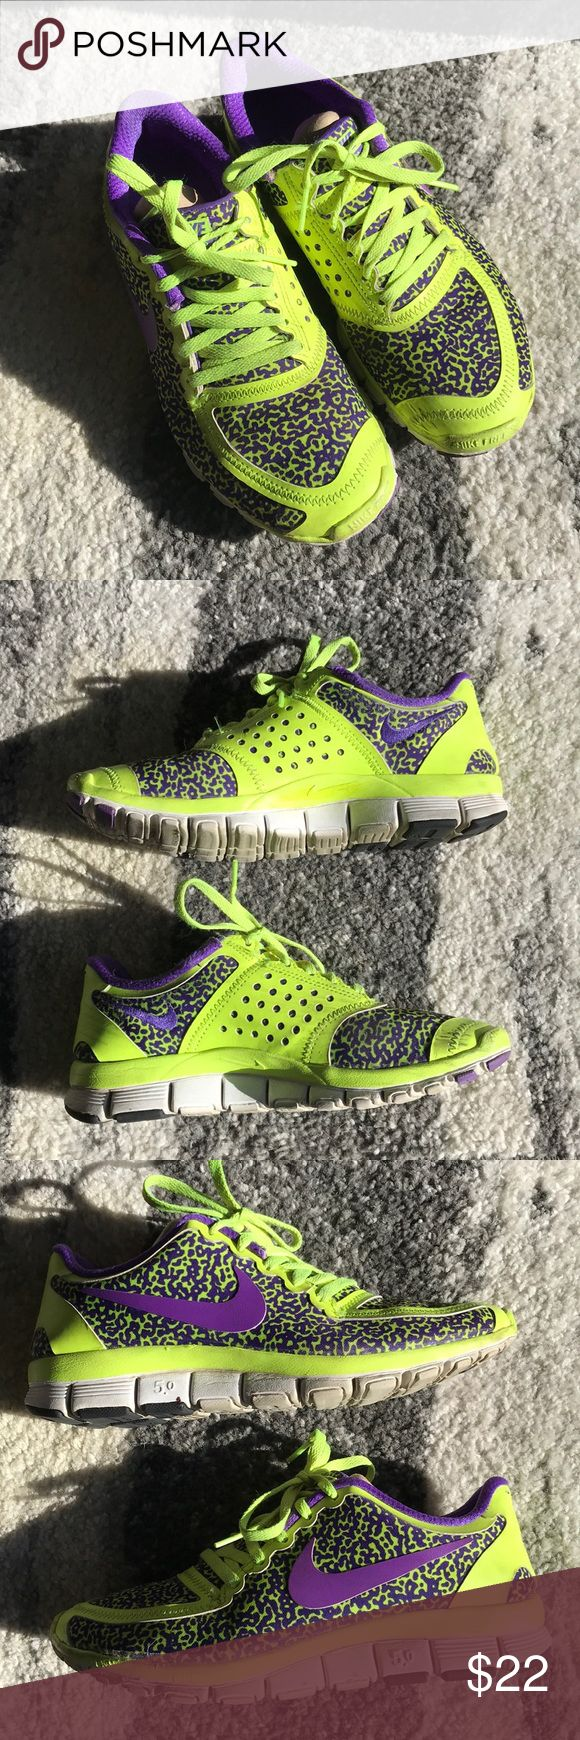 Nike Free 5.0 Sneakers - Women's size 6.5 Purple and volt leopard print Nike Free's. Some wear to the soles but still a lot of life left. Left shoe has a small hole on right side of ankle (see photo). Not very noticeable when on feet. I do not have the original box. Nike Shoes Athletic Shoes